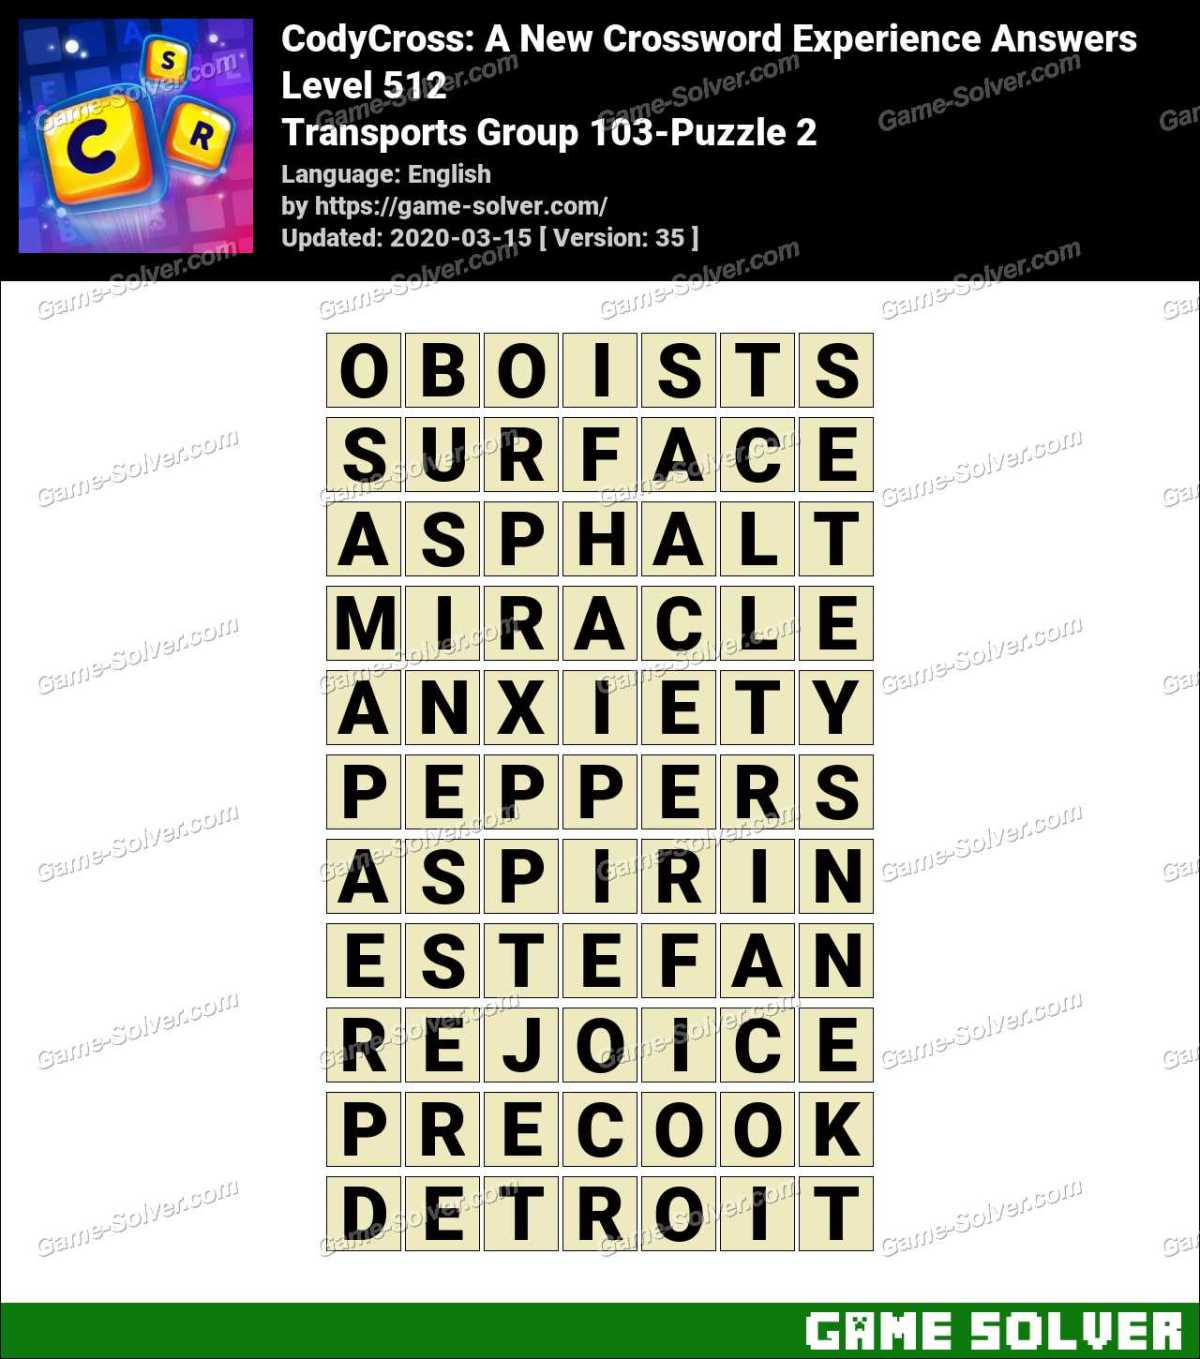 CodyCross Transports Group 103-Puzzle 2 Answers